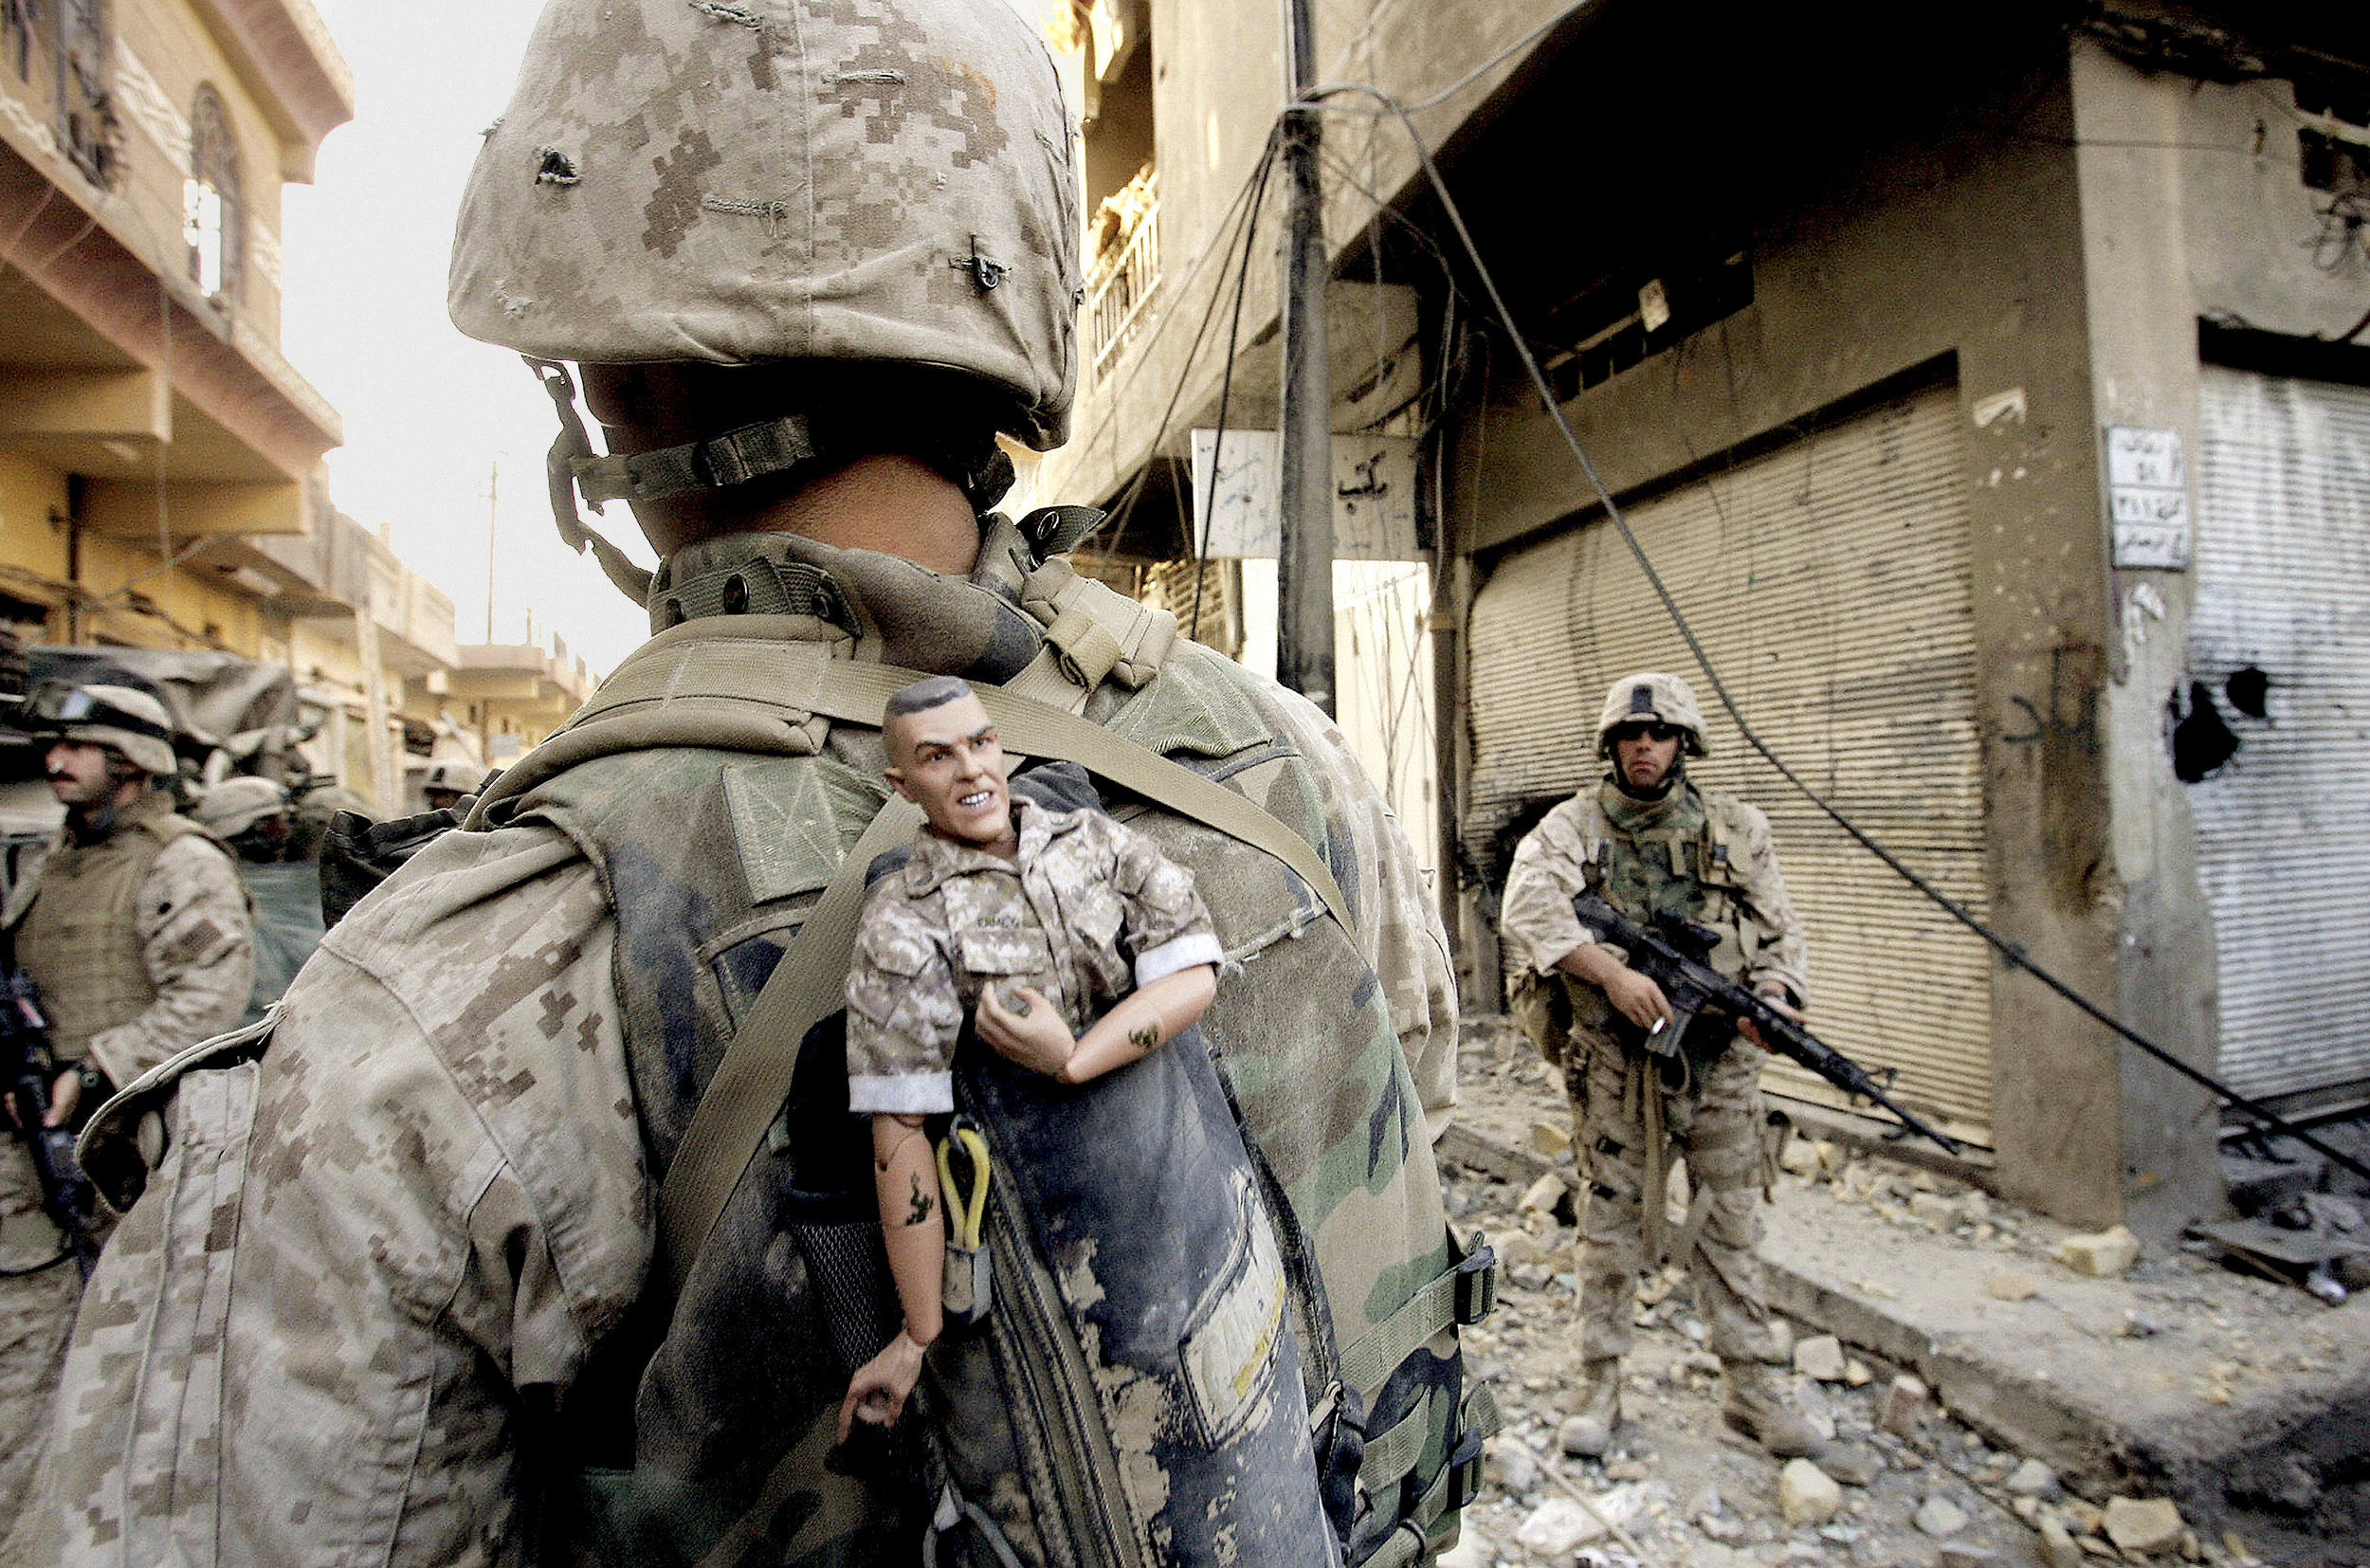 A U.S. Marine carrying a good luck mascot in western Fallujah, Iraq, November 14, 2004.